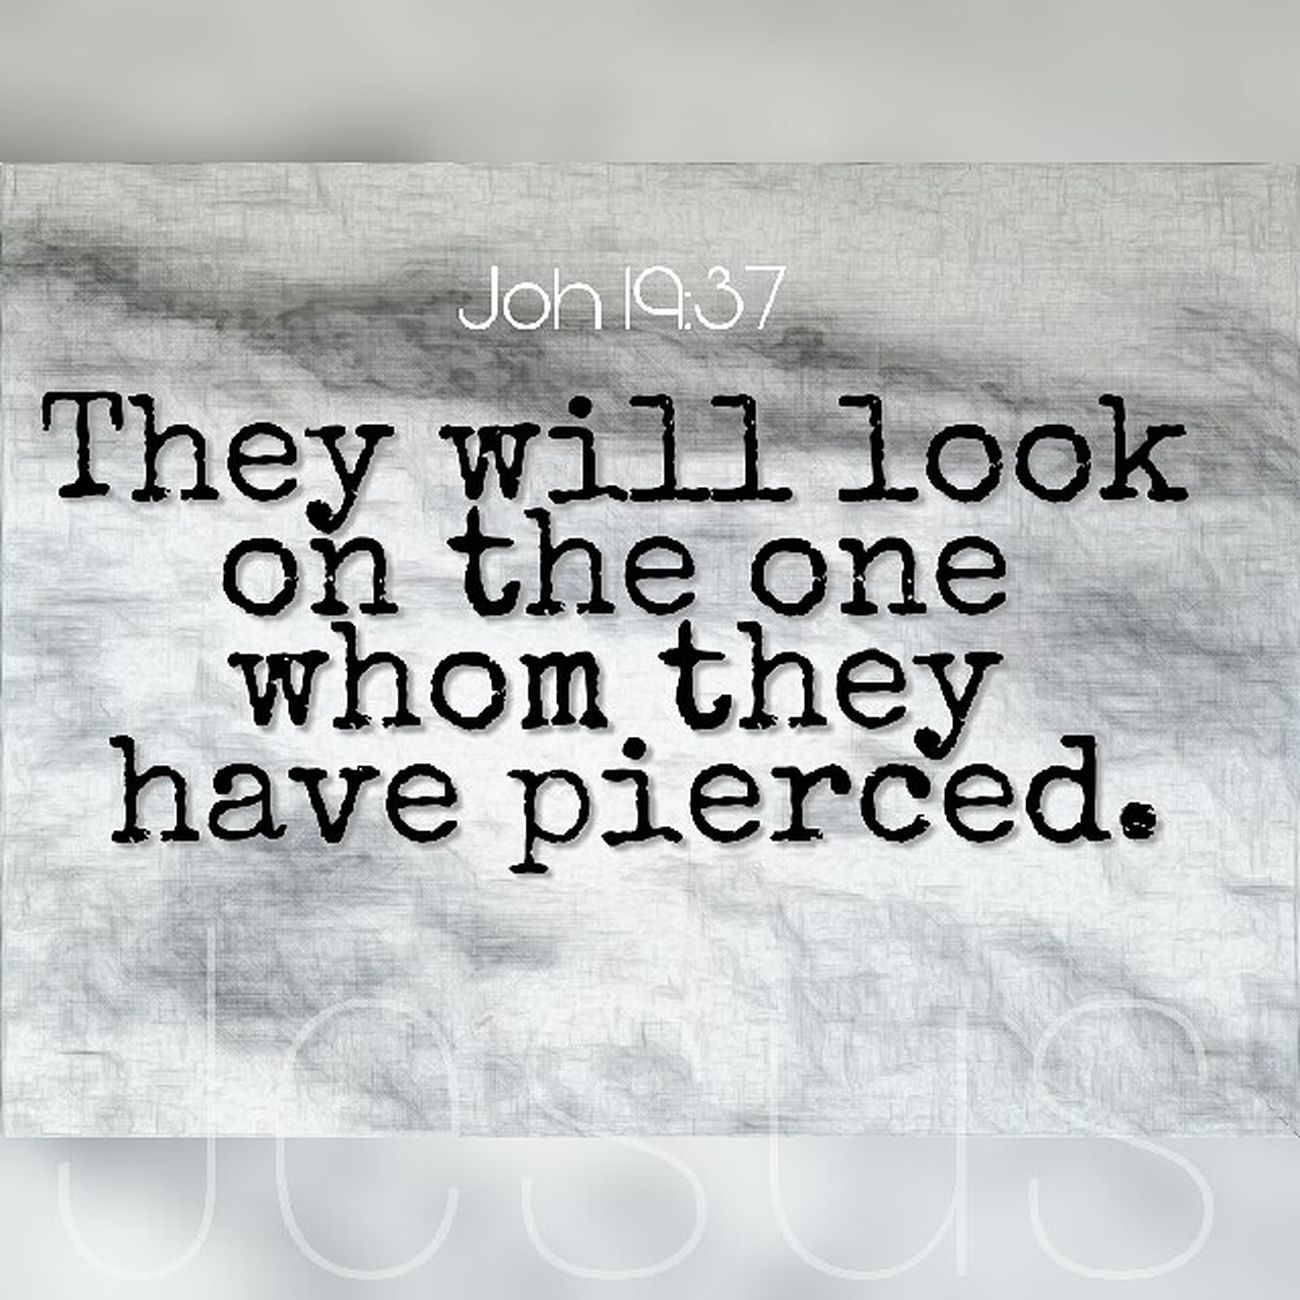 """*[[Joh 19:37]] NET* And again another scripture says, """"They will look on the one whom they have pierced."""" Text Bible Verses Jesus"""